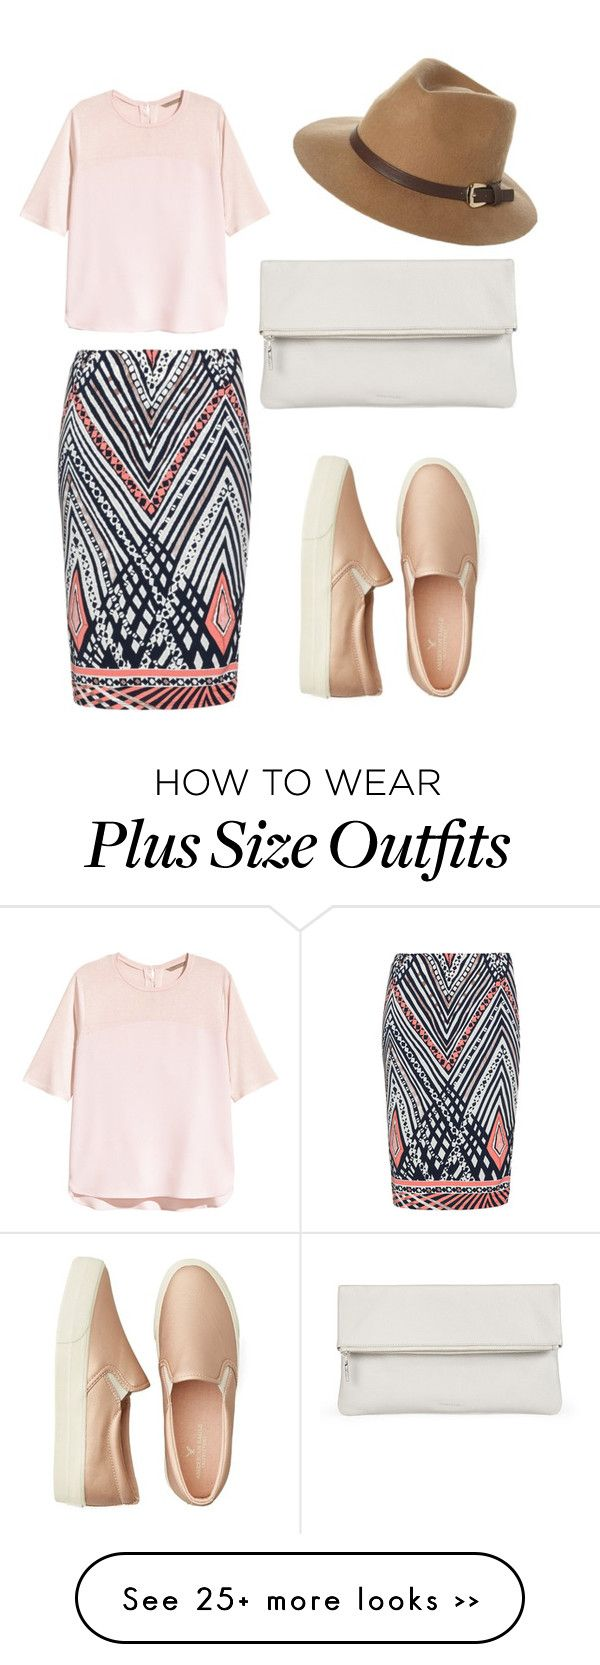 """""""sneakers and flats"""" by devonkathleenallen on Polyvore featuring American Eagle Outfitters, Anna Scholz, H&M, Rusty and Whistles"""